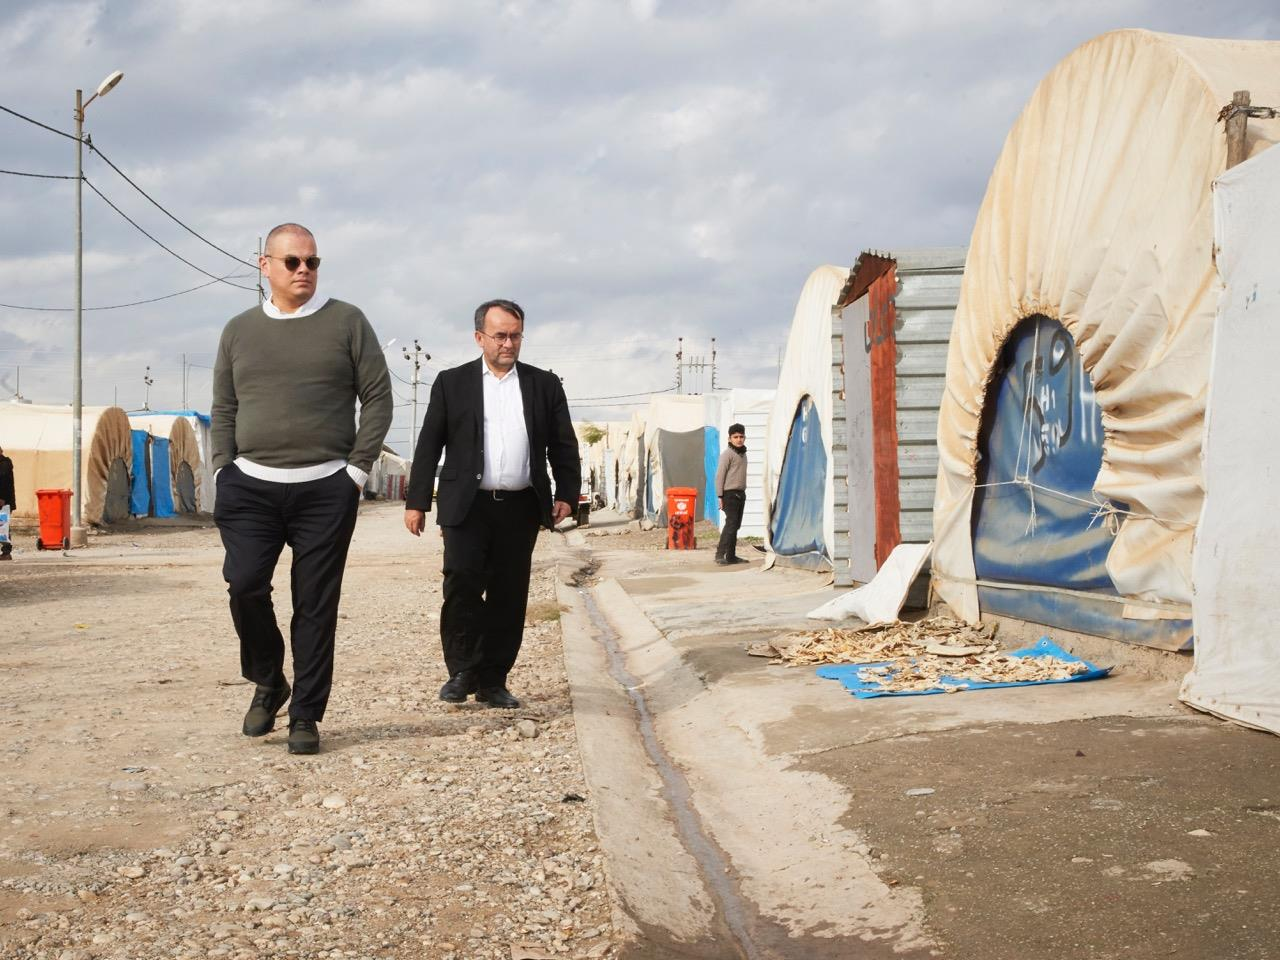 Marco tours a Yazidi refugee camp in Northern Iraq